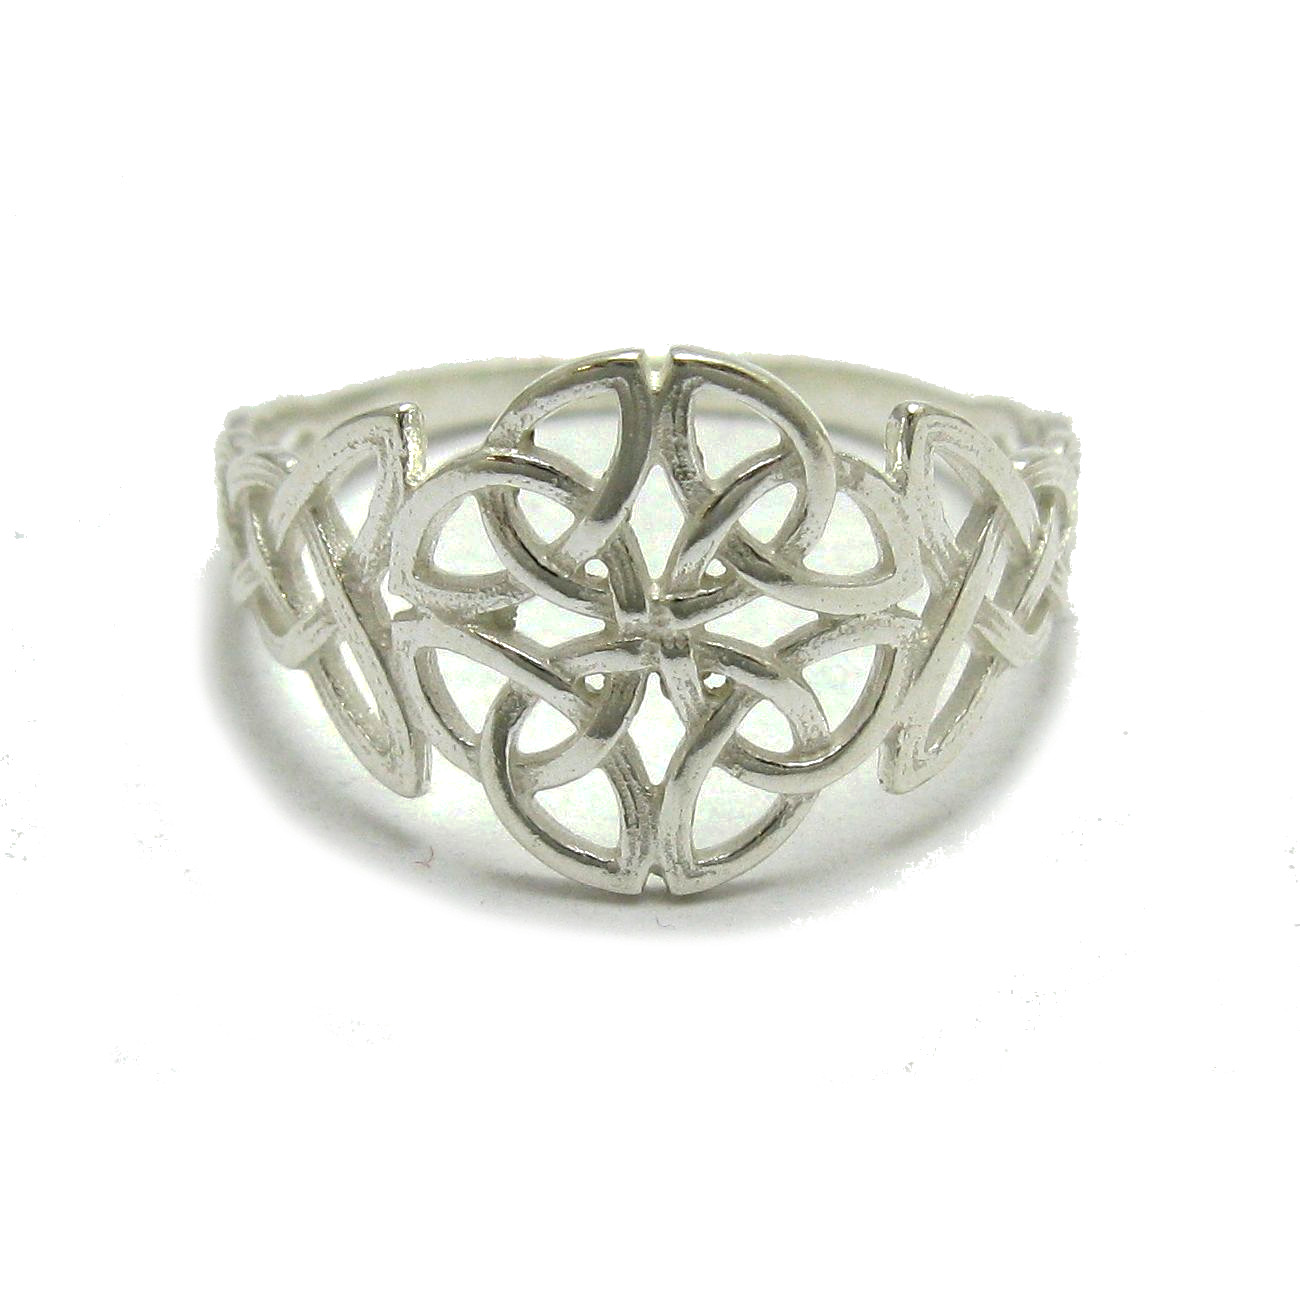 Silver ring - R001778